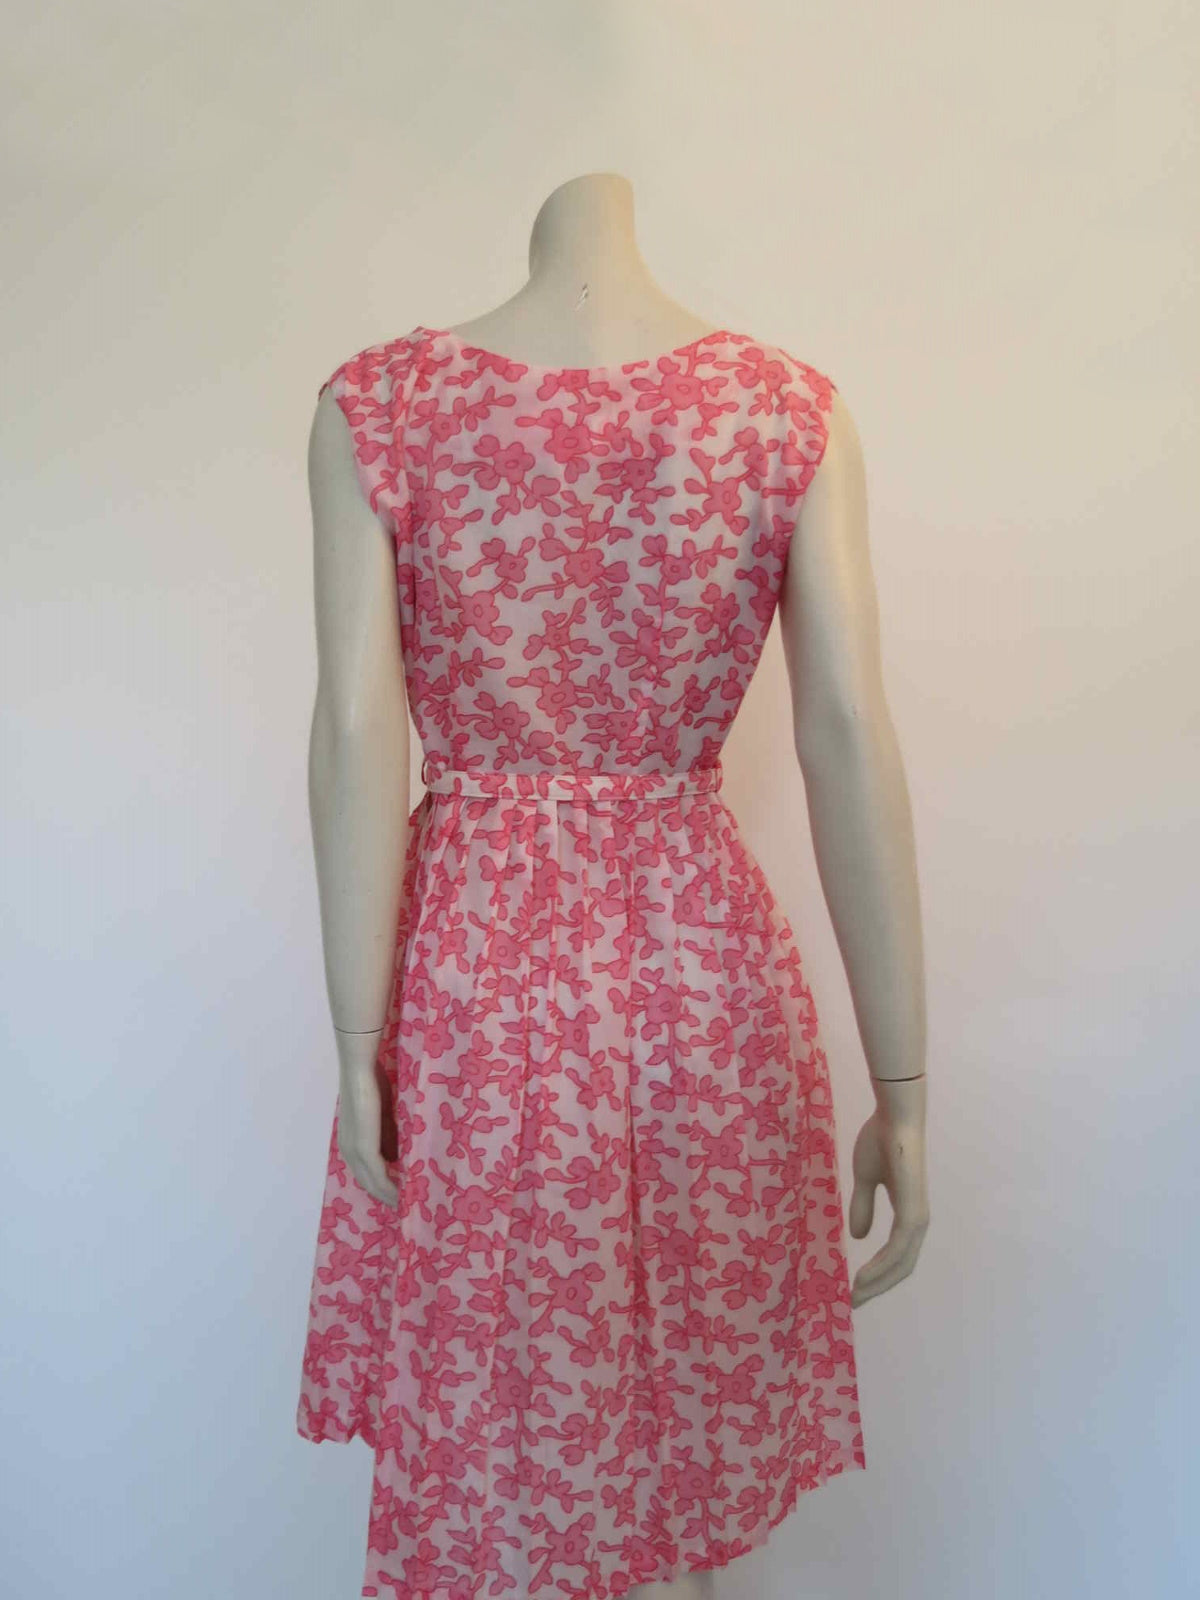 1950s vintage dress pink floral with pleated skirt  by house of tanner